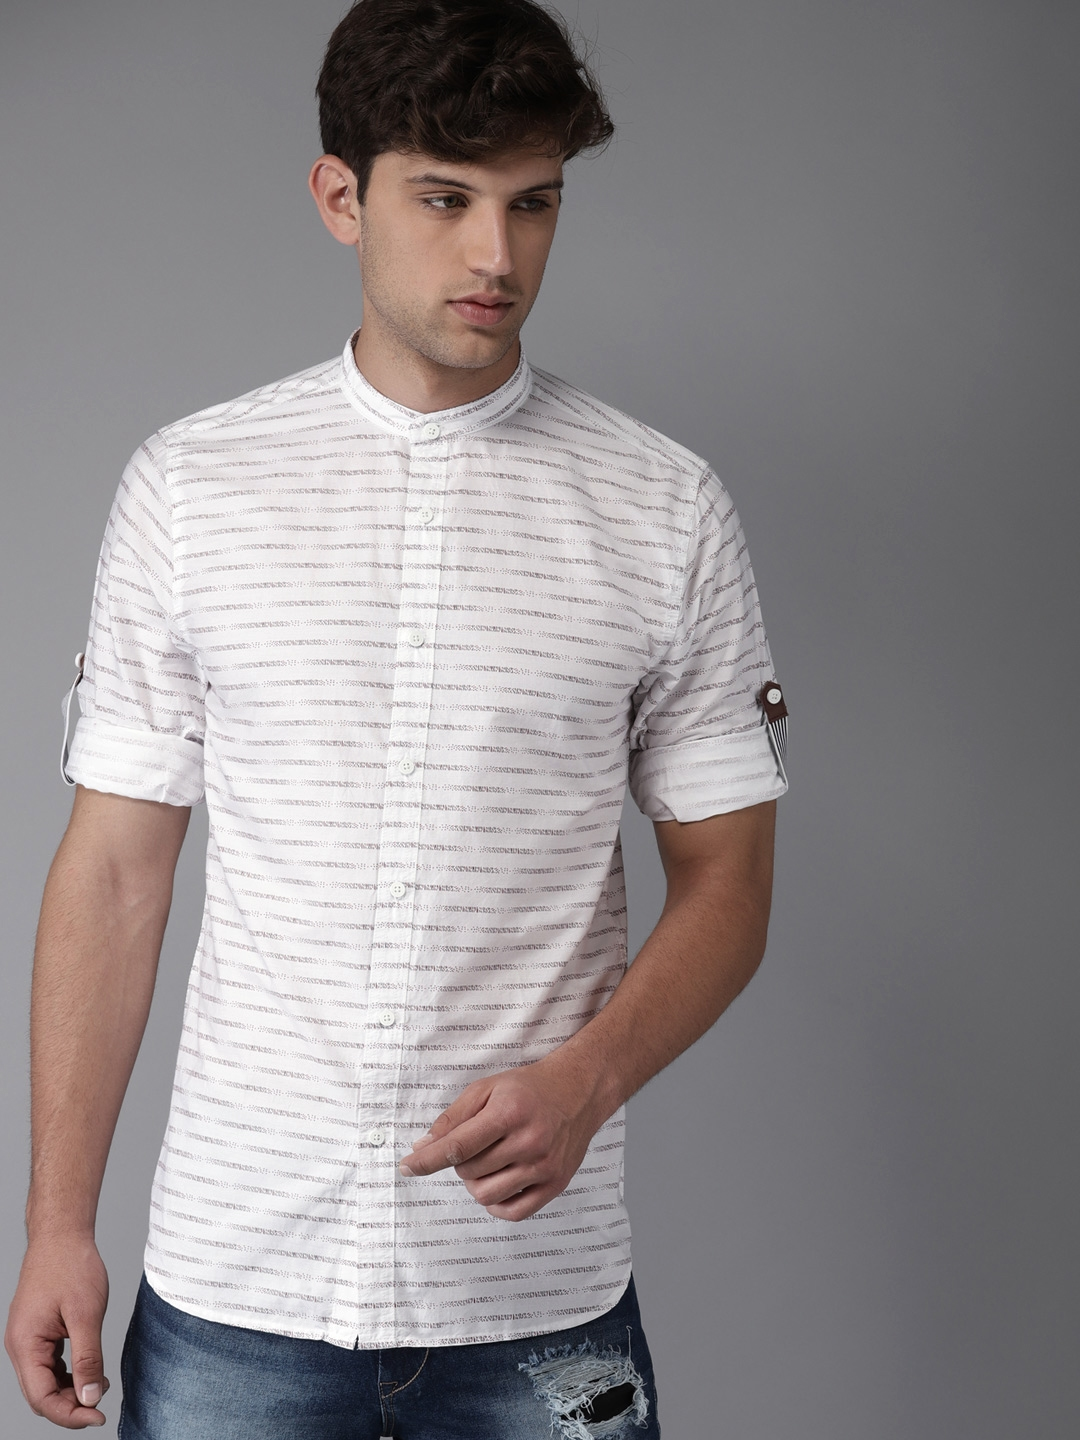 05dbf3bf7c3f0e Buy HERE&NOW Men White & Red Striped Regular Fit Casual Shirt ...